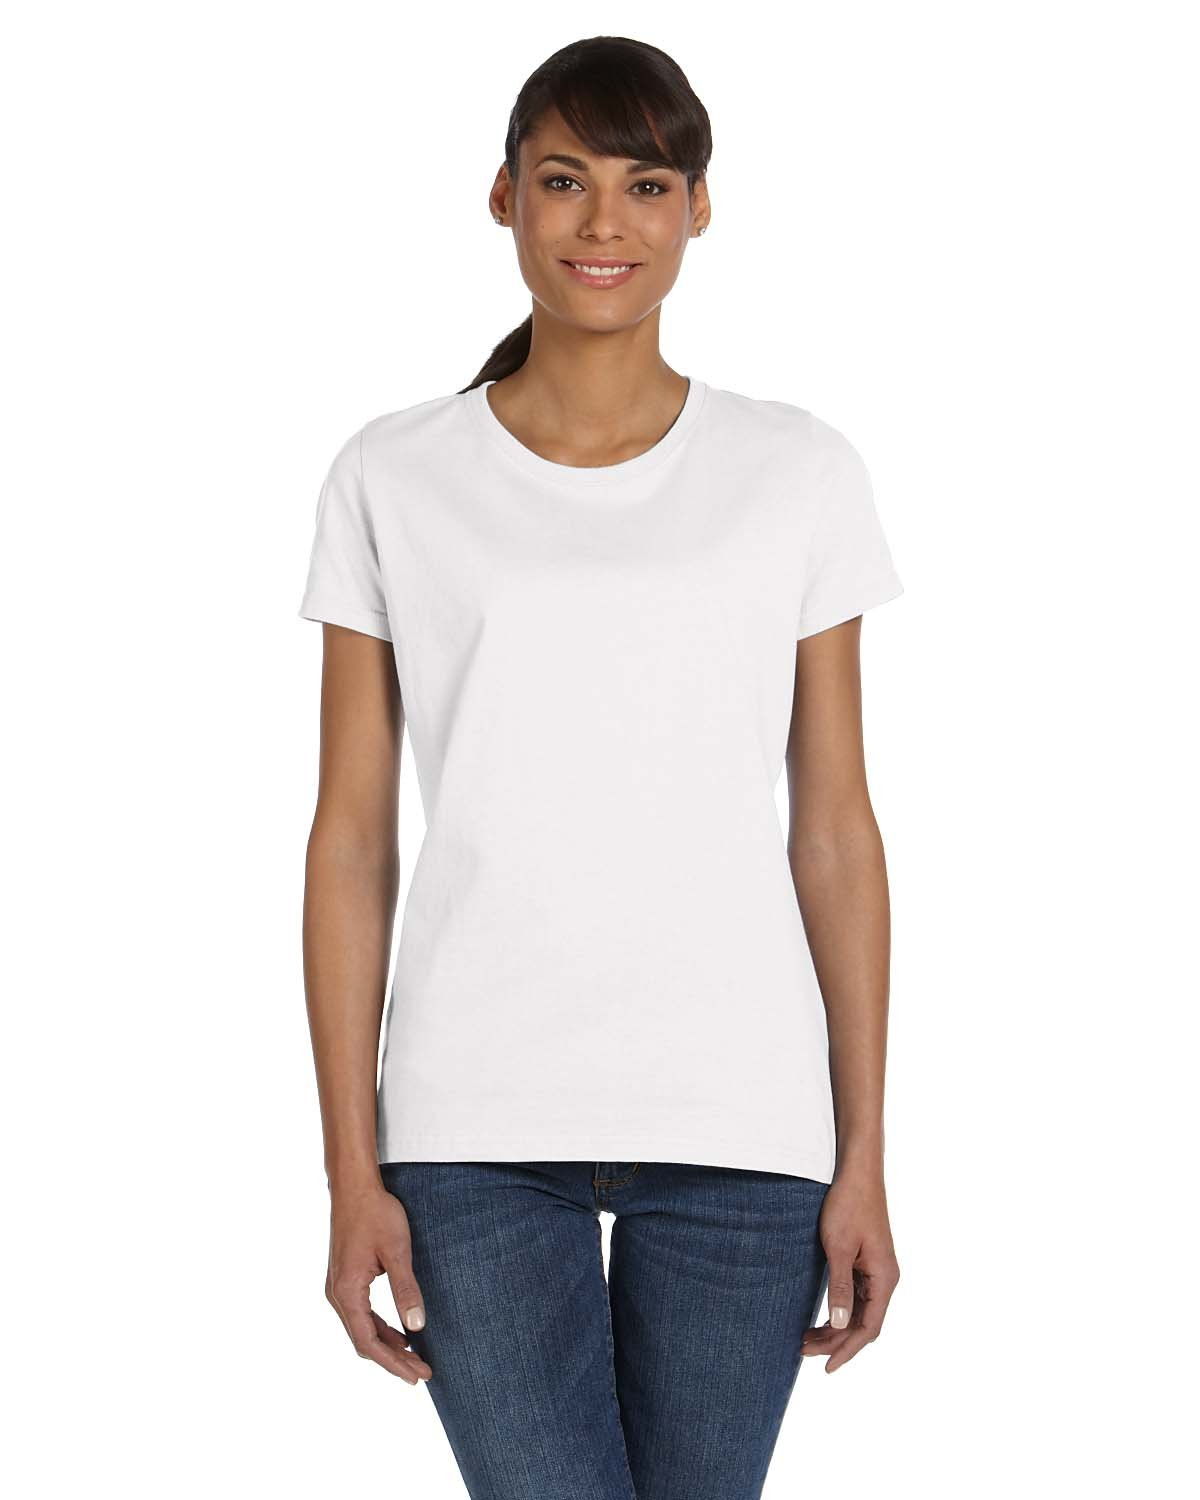 Fruit of the Loom Ladies' HD Cotton™ T-Shirt WHITE